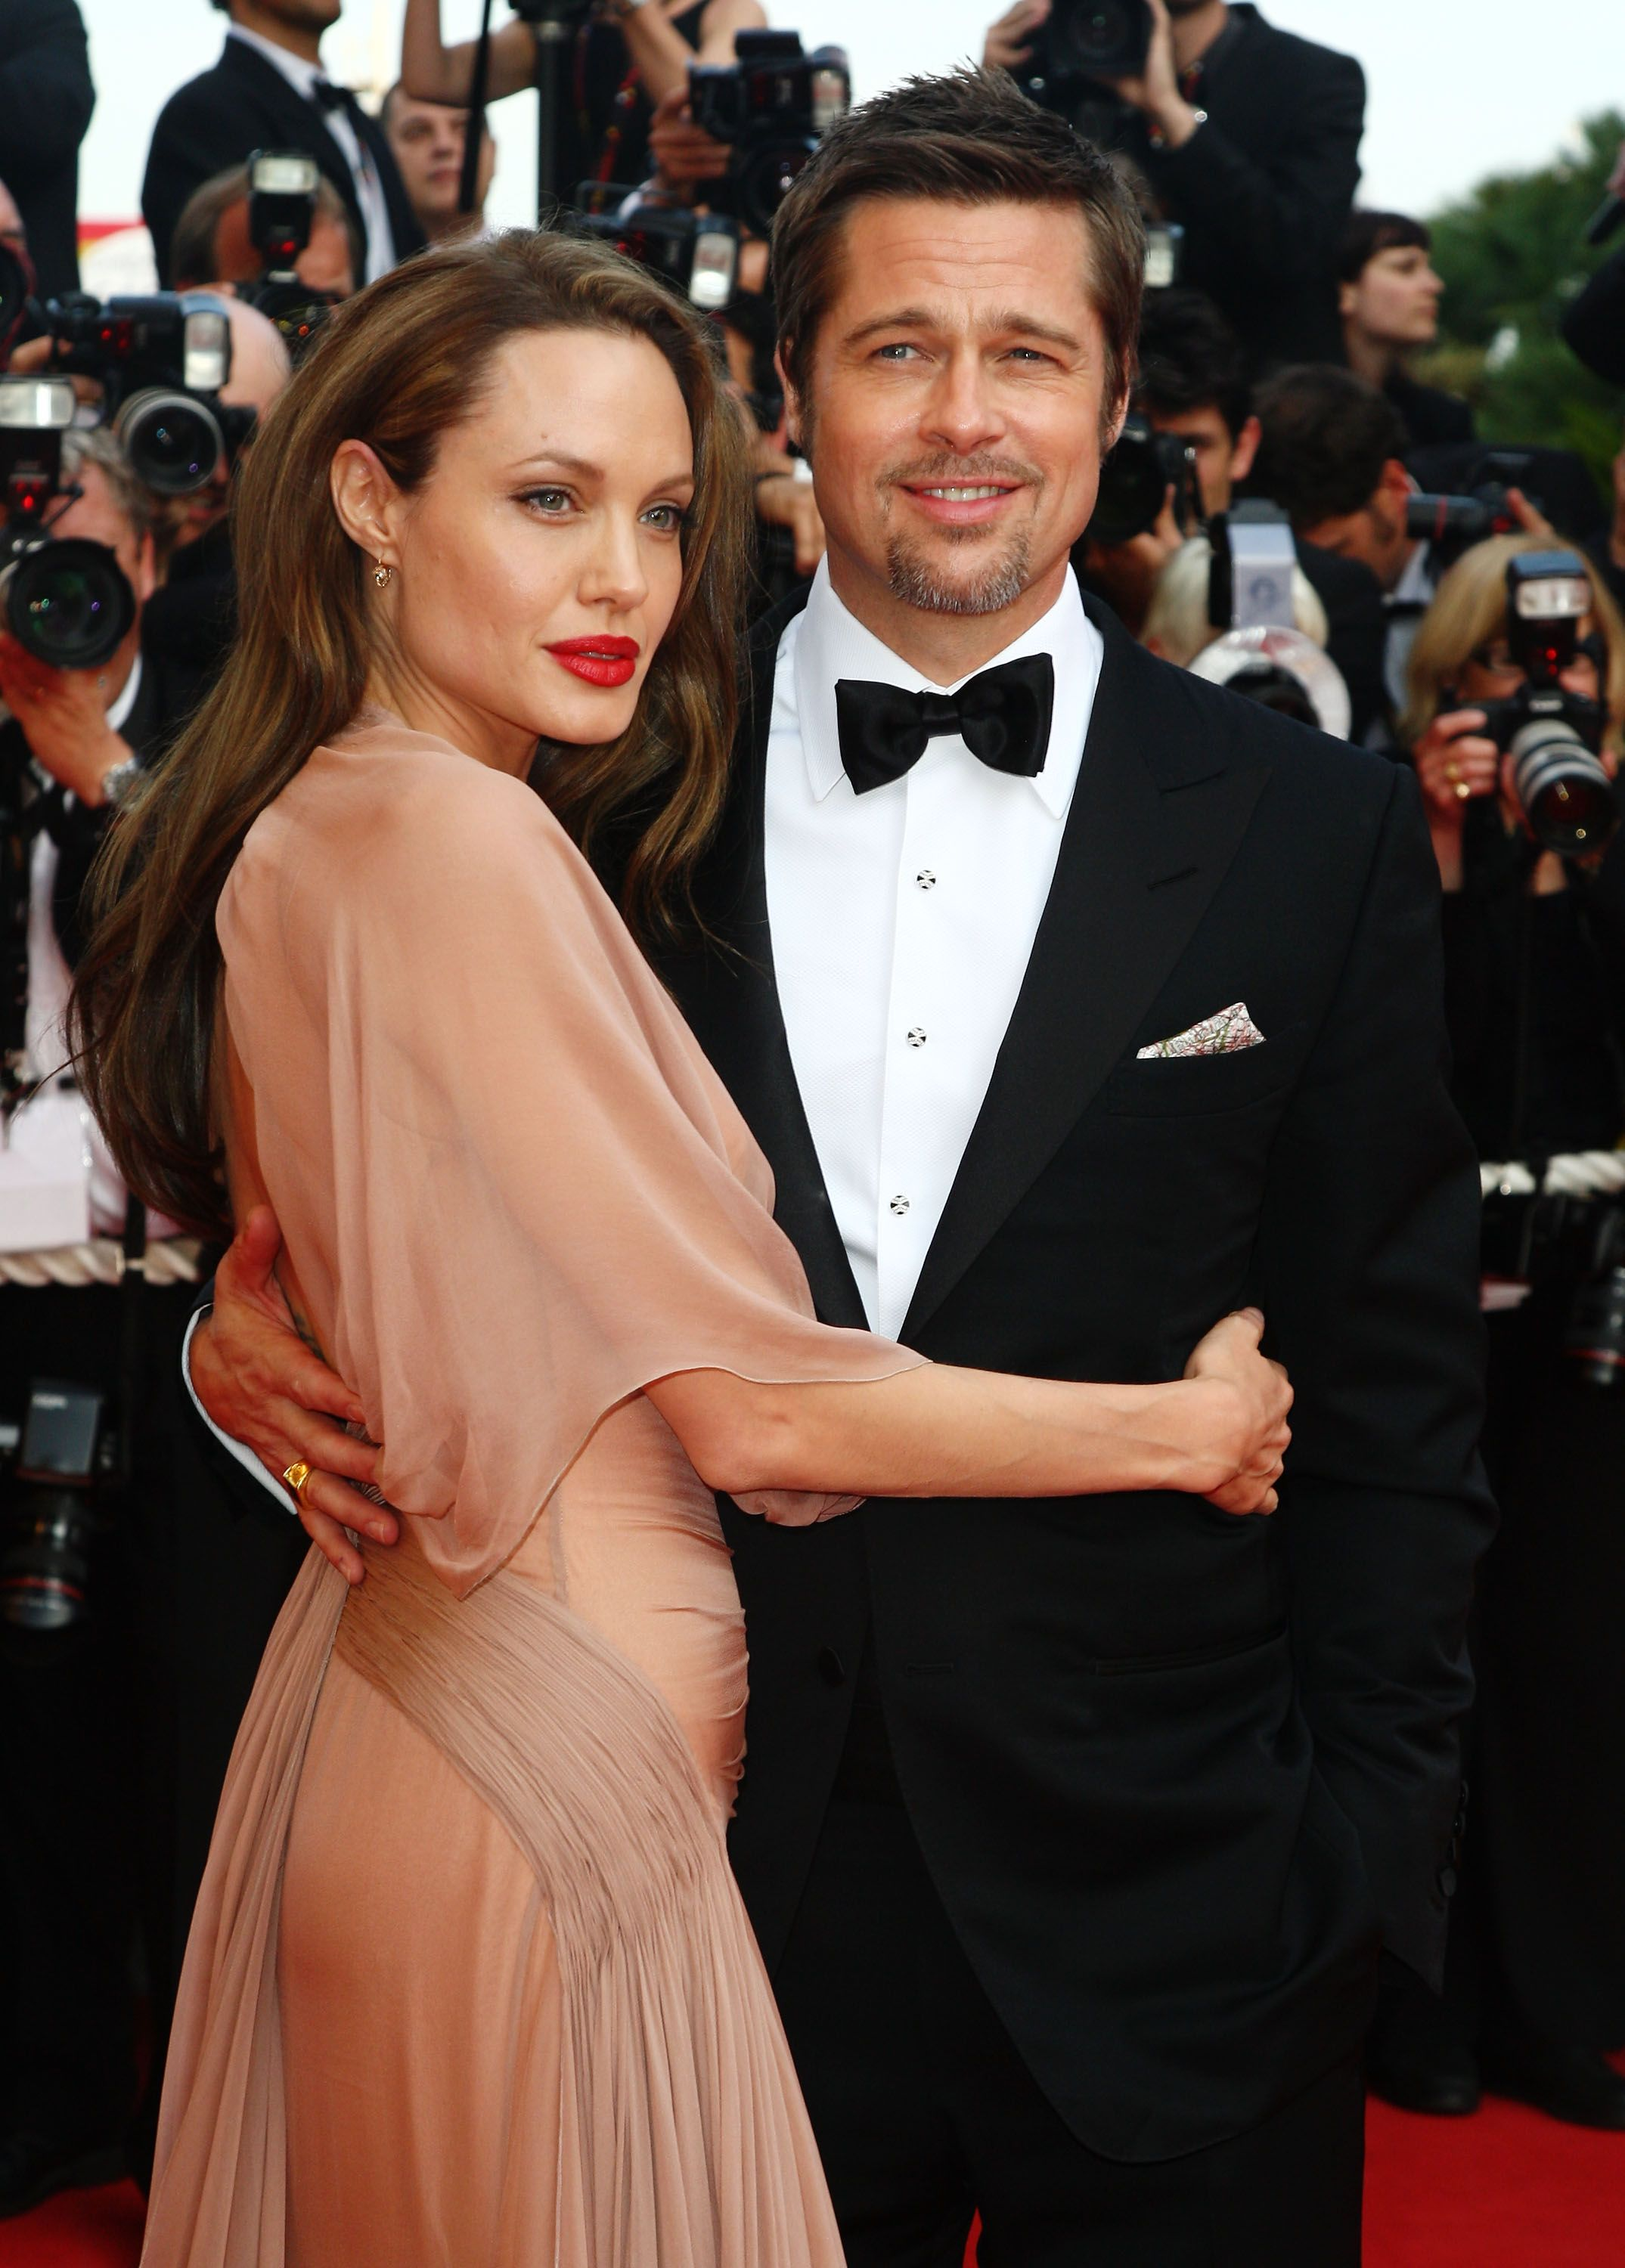 What Brad Pitt and Angelina Jolie's Relationship Is After Becoming Legally  Single